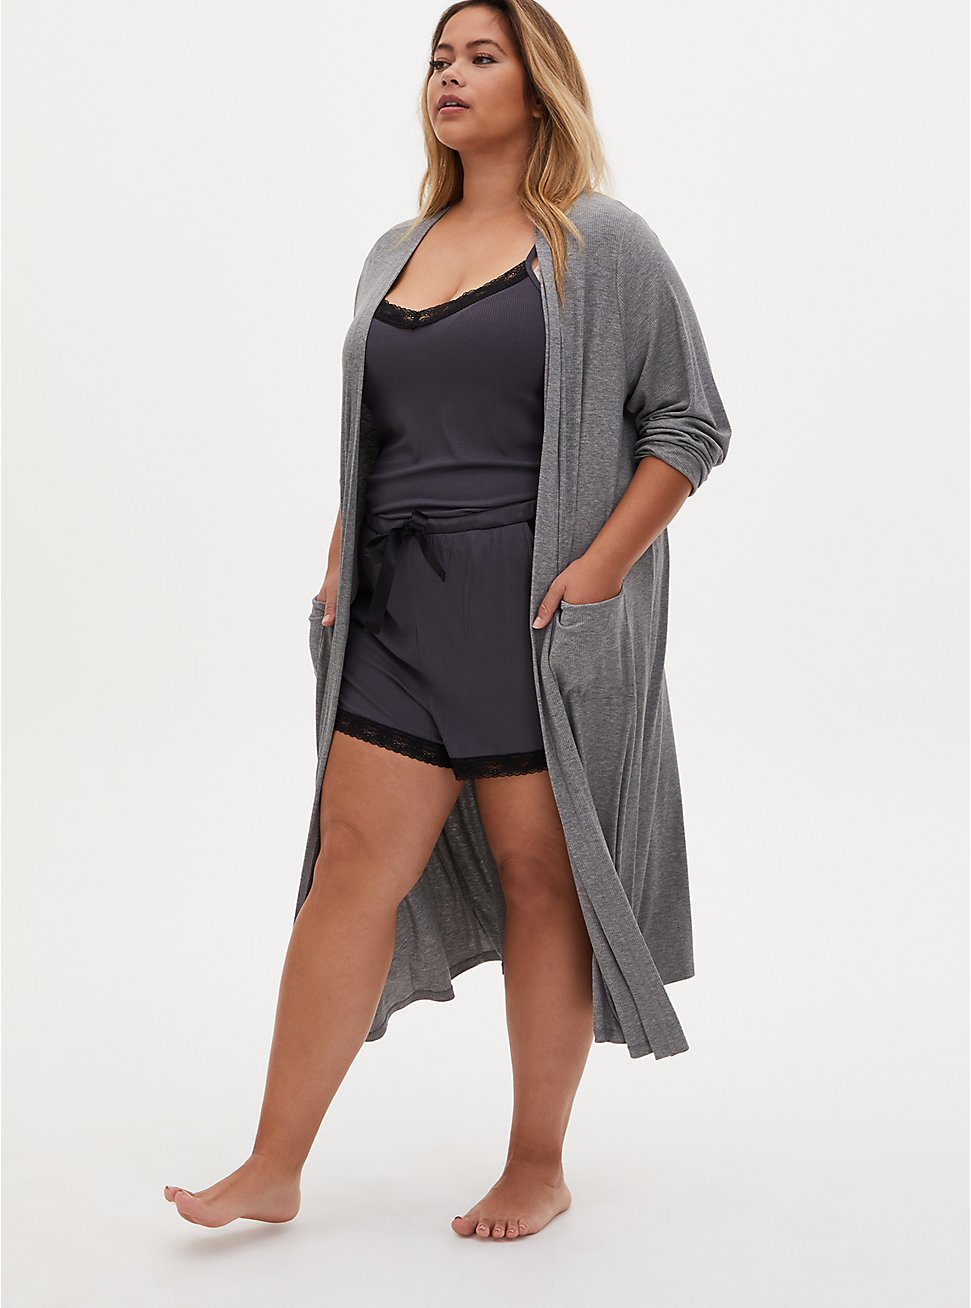 Super Soft Dark Slate Grey Rib Lace Sleep Short, GREY, hi-res